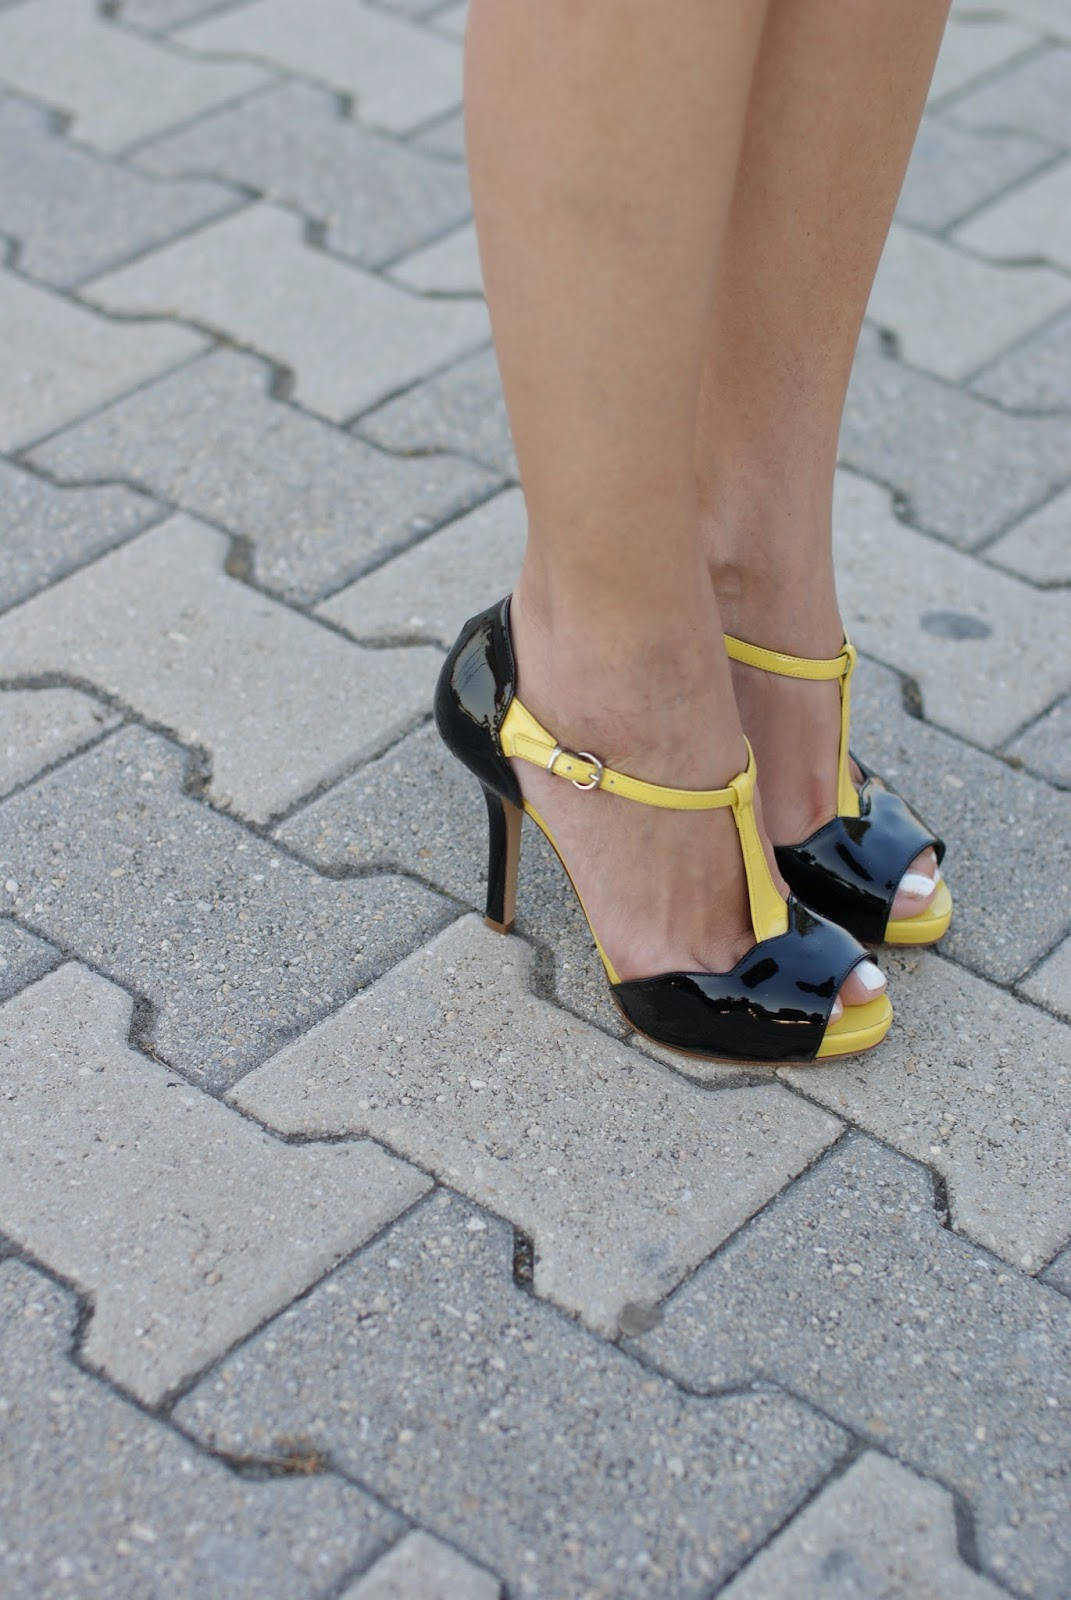 Sergio Levantesi shoes, t-bar yellow black sandals, Fashion and Cookies, fashion blogger